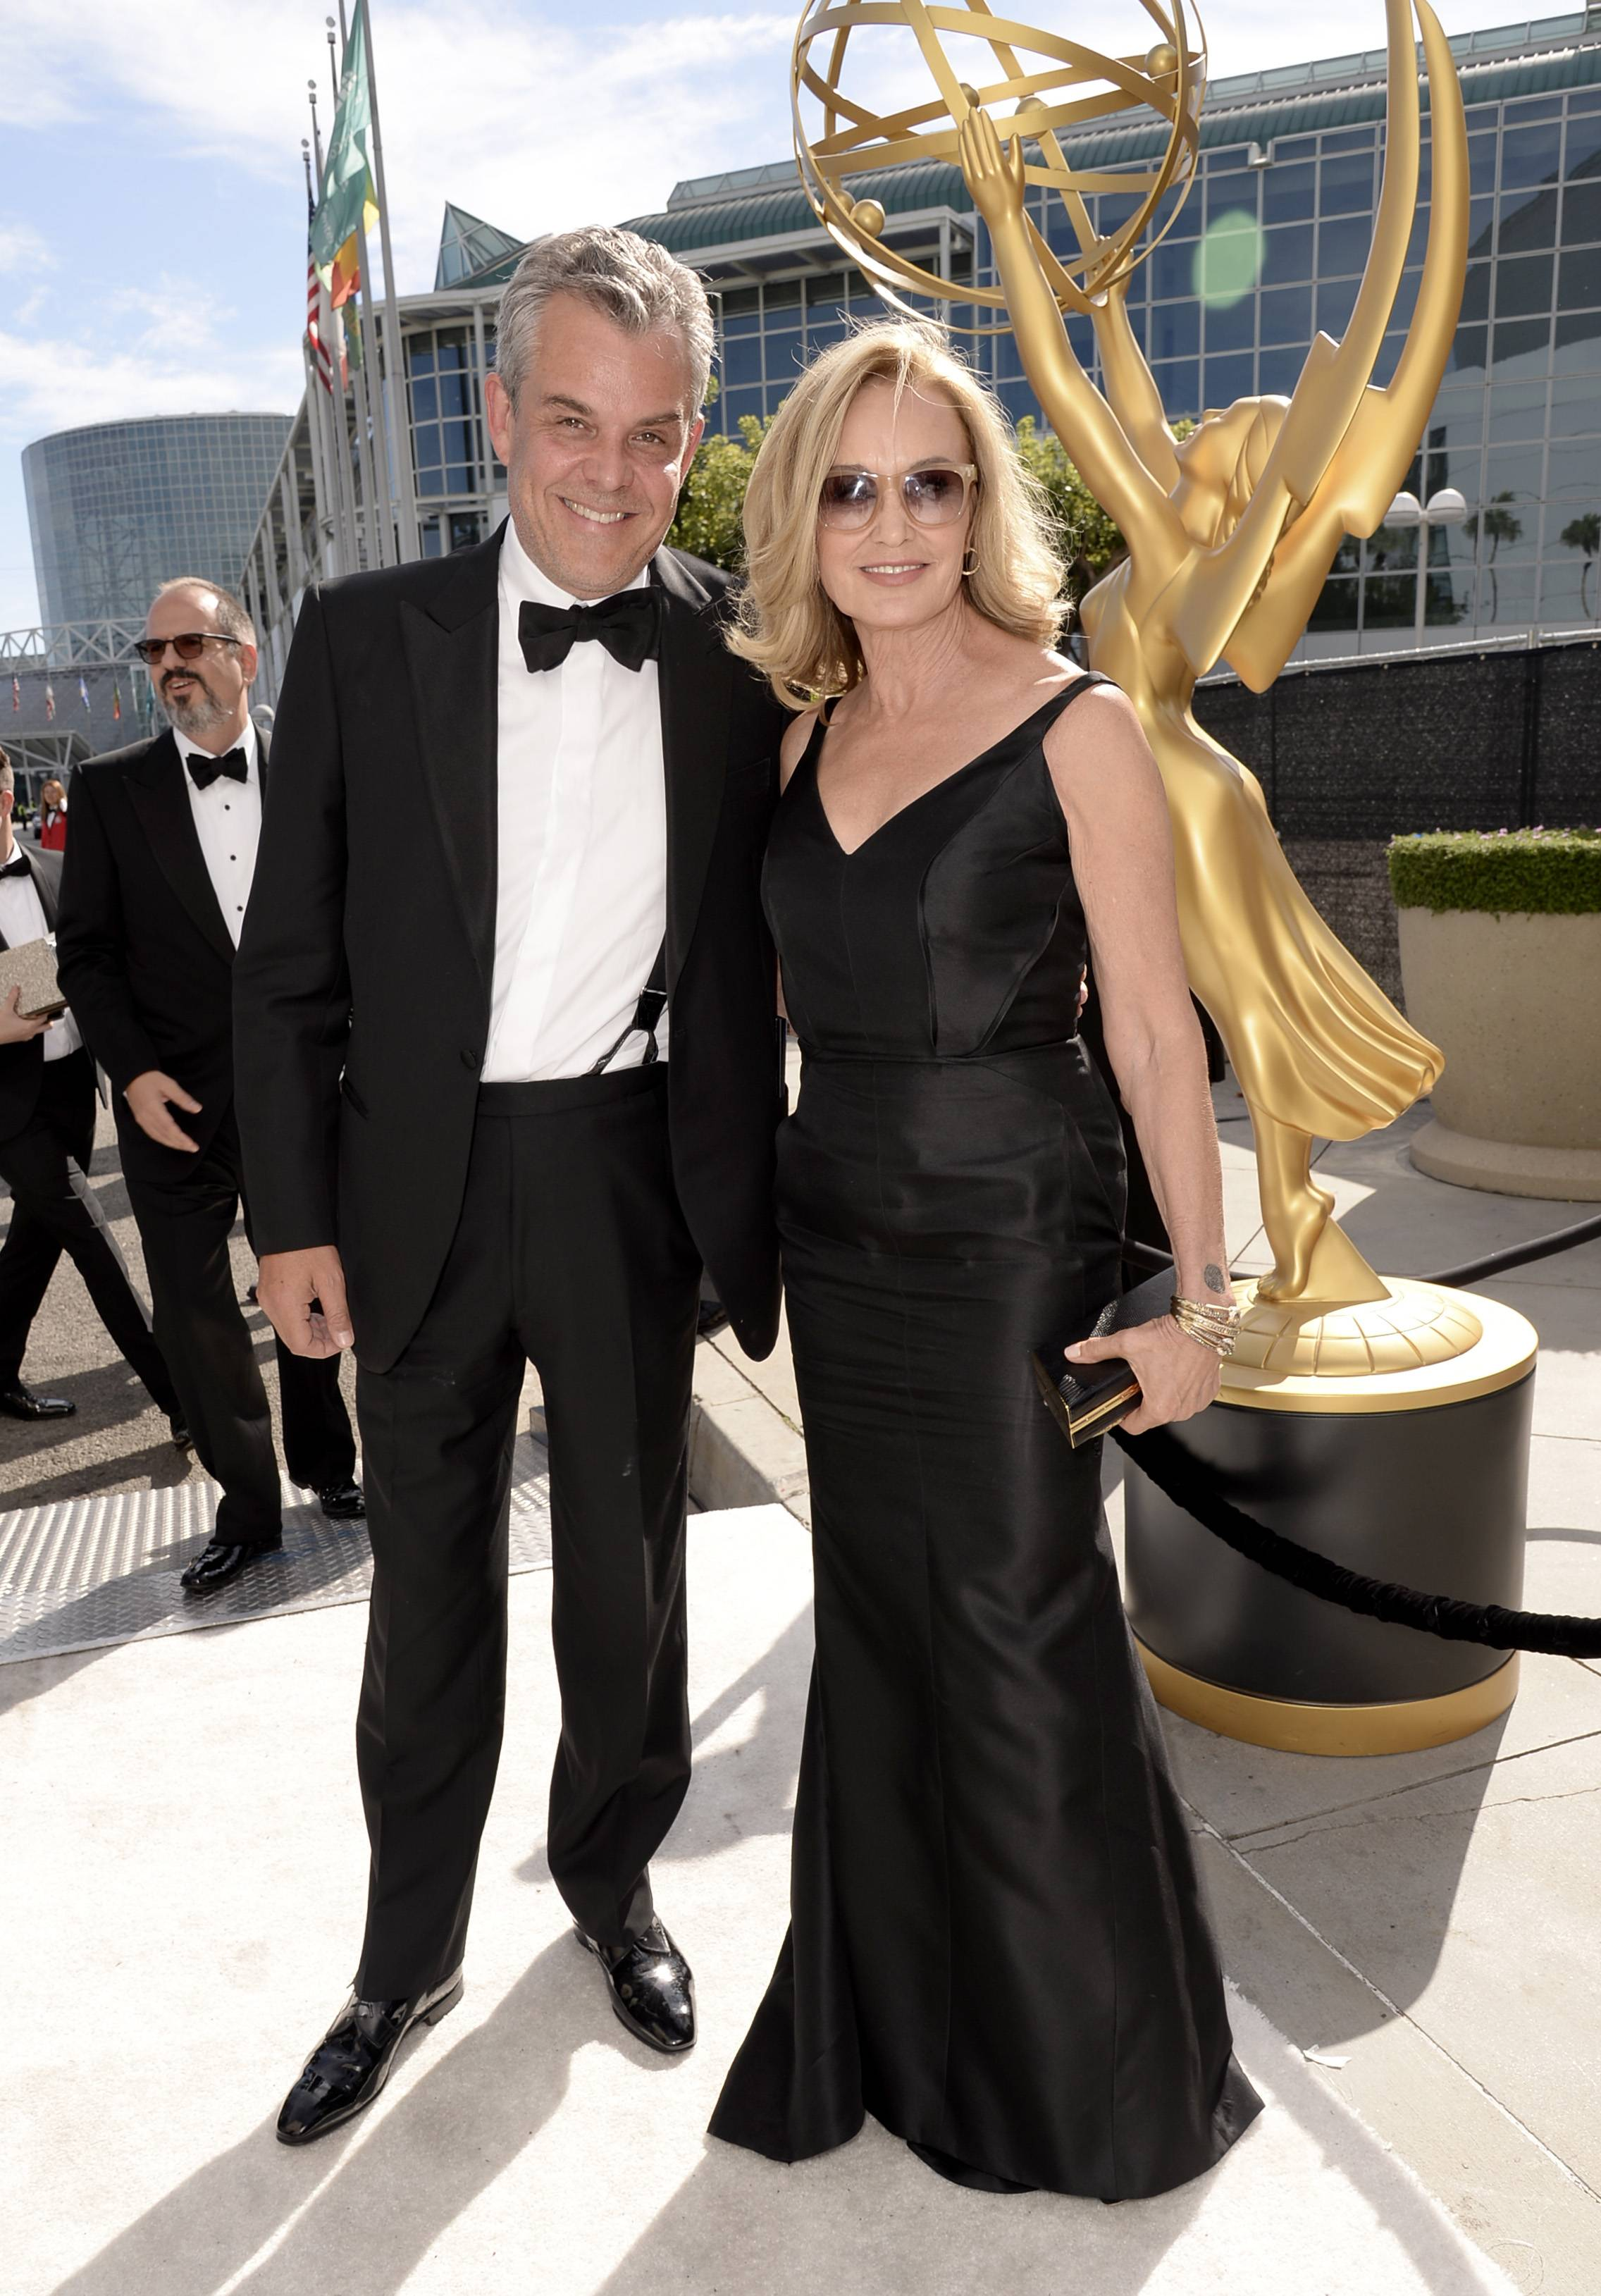 Danny Huston, left, and Jessica Lange arrive at the 66th Primetime Emmy Awards at the Nokia Theatre.